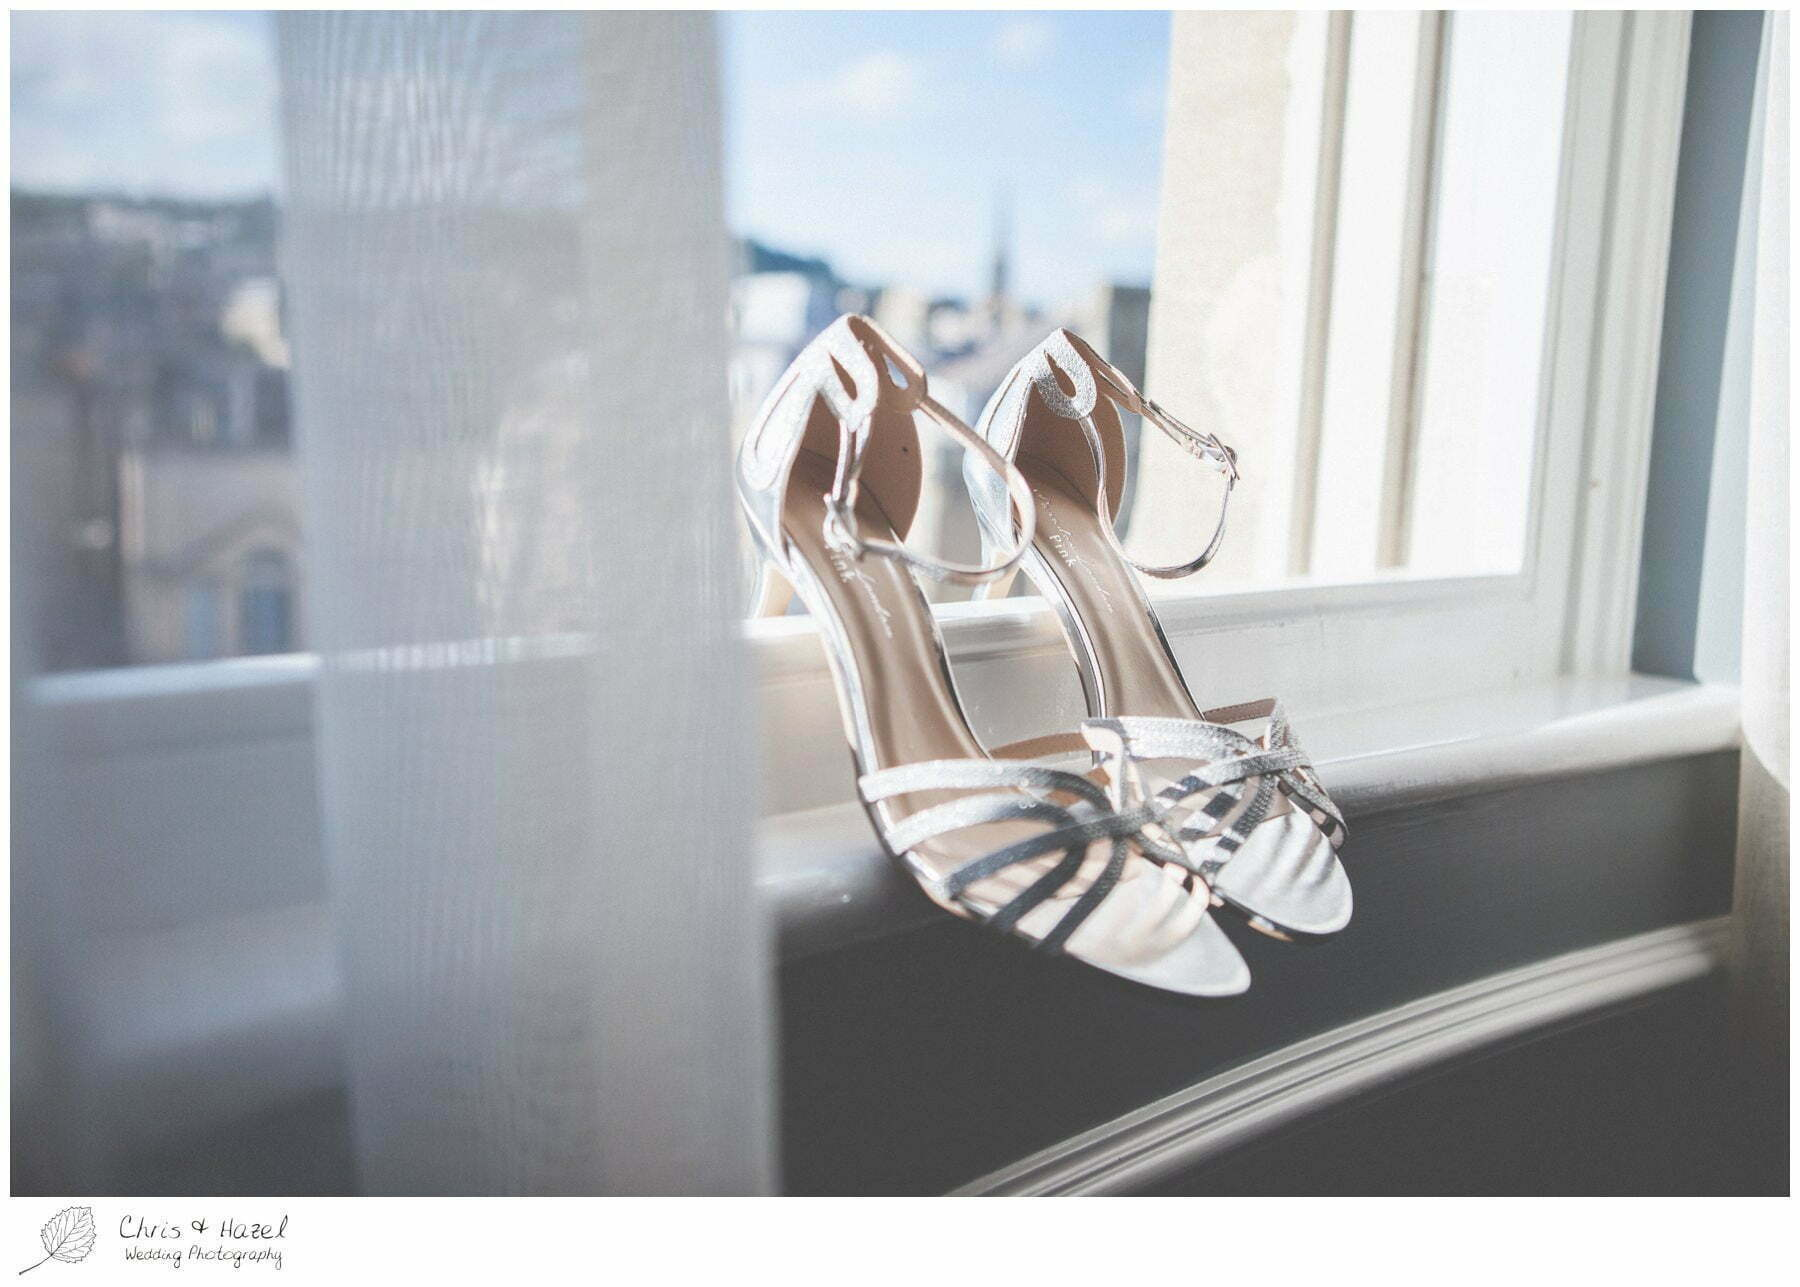 Bridal shoes, silver, wedding details, Wedding preparations, The Gainsborough Bath Spa hotel, Gainsborough Hotel Bath, documentary wedding photography, Chris and Hazel Wedding Photography Bath, Andy Frost Sian Upson